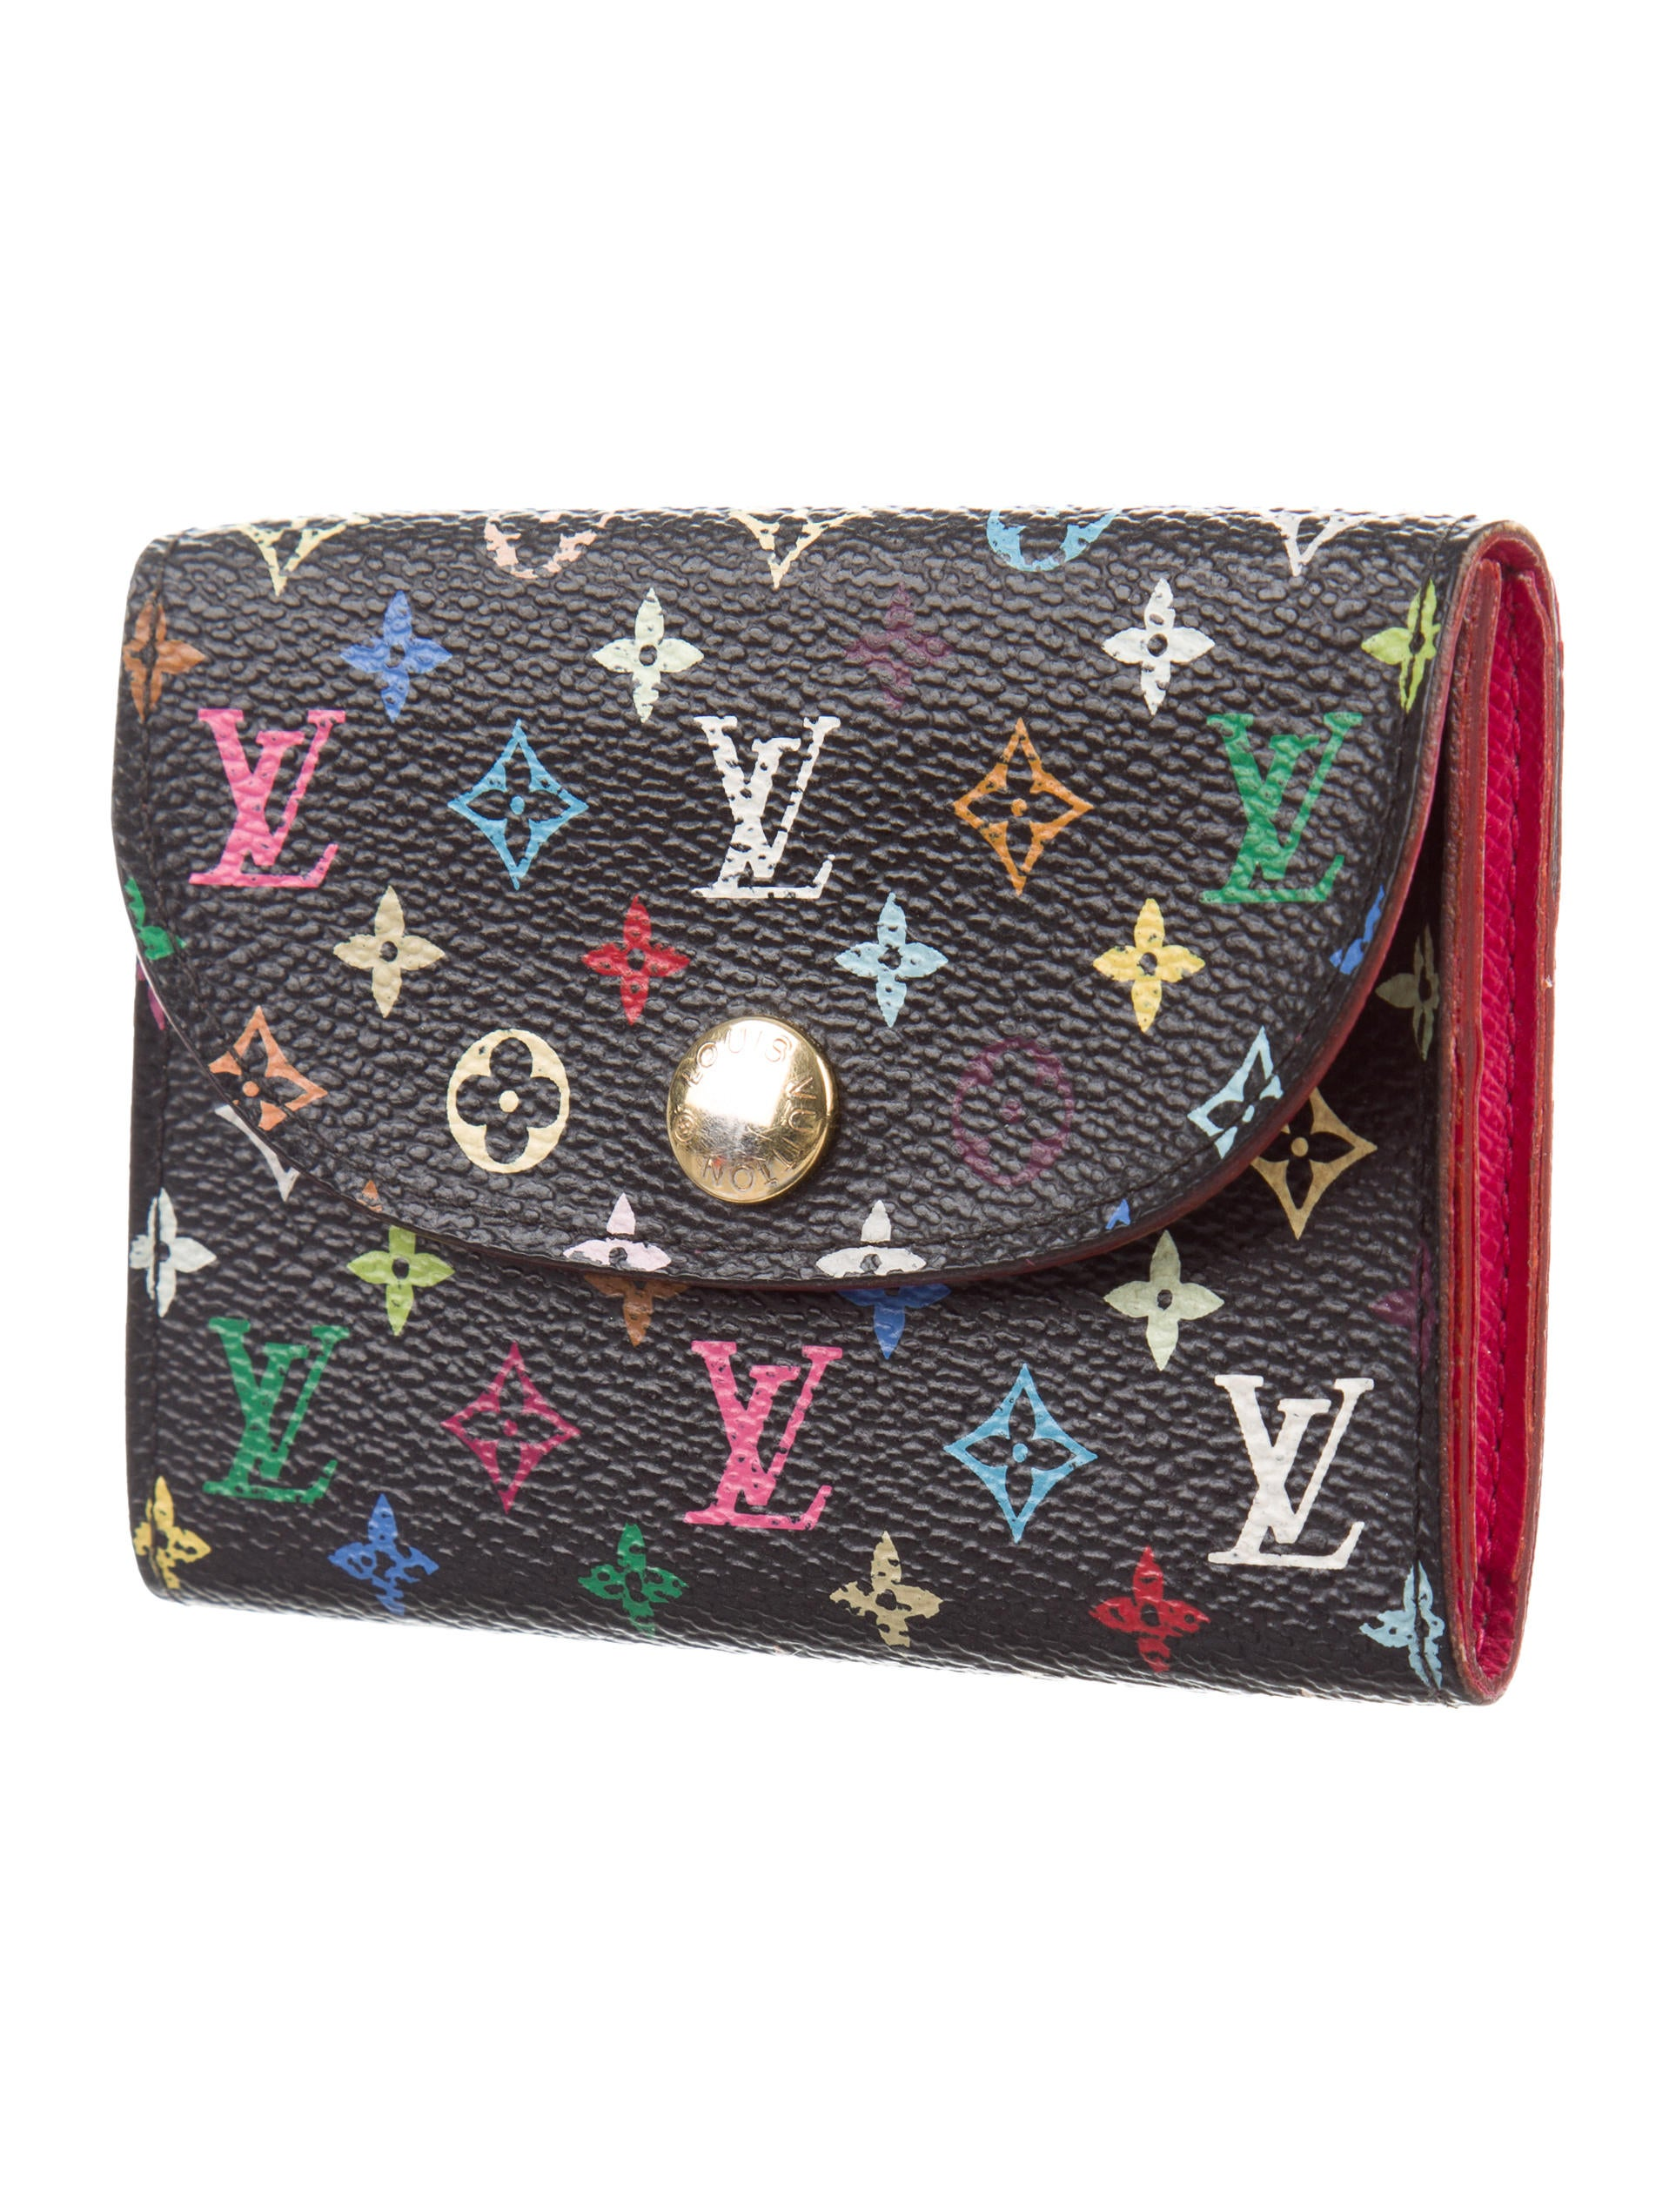 Louis vuitton multicolore business card holder for Louis vuitton multicolor business card holder